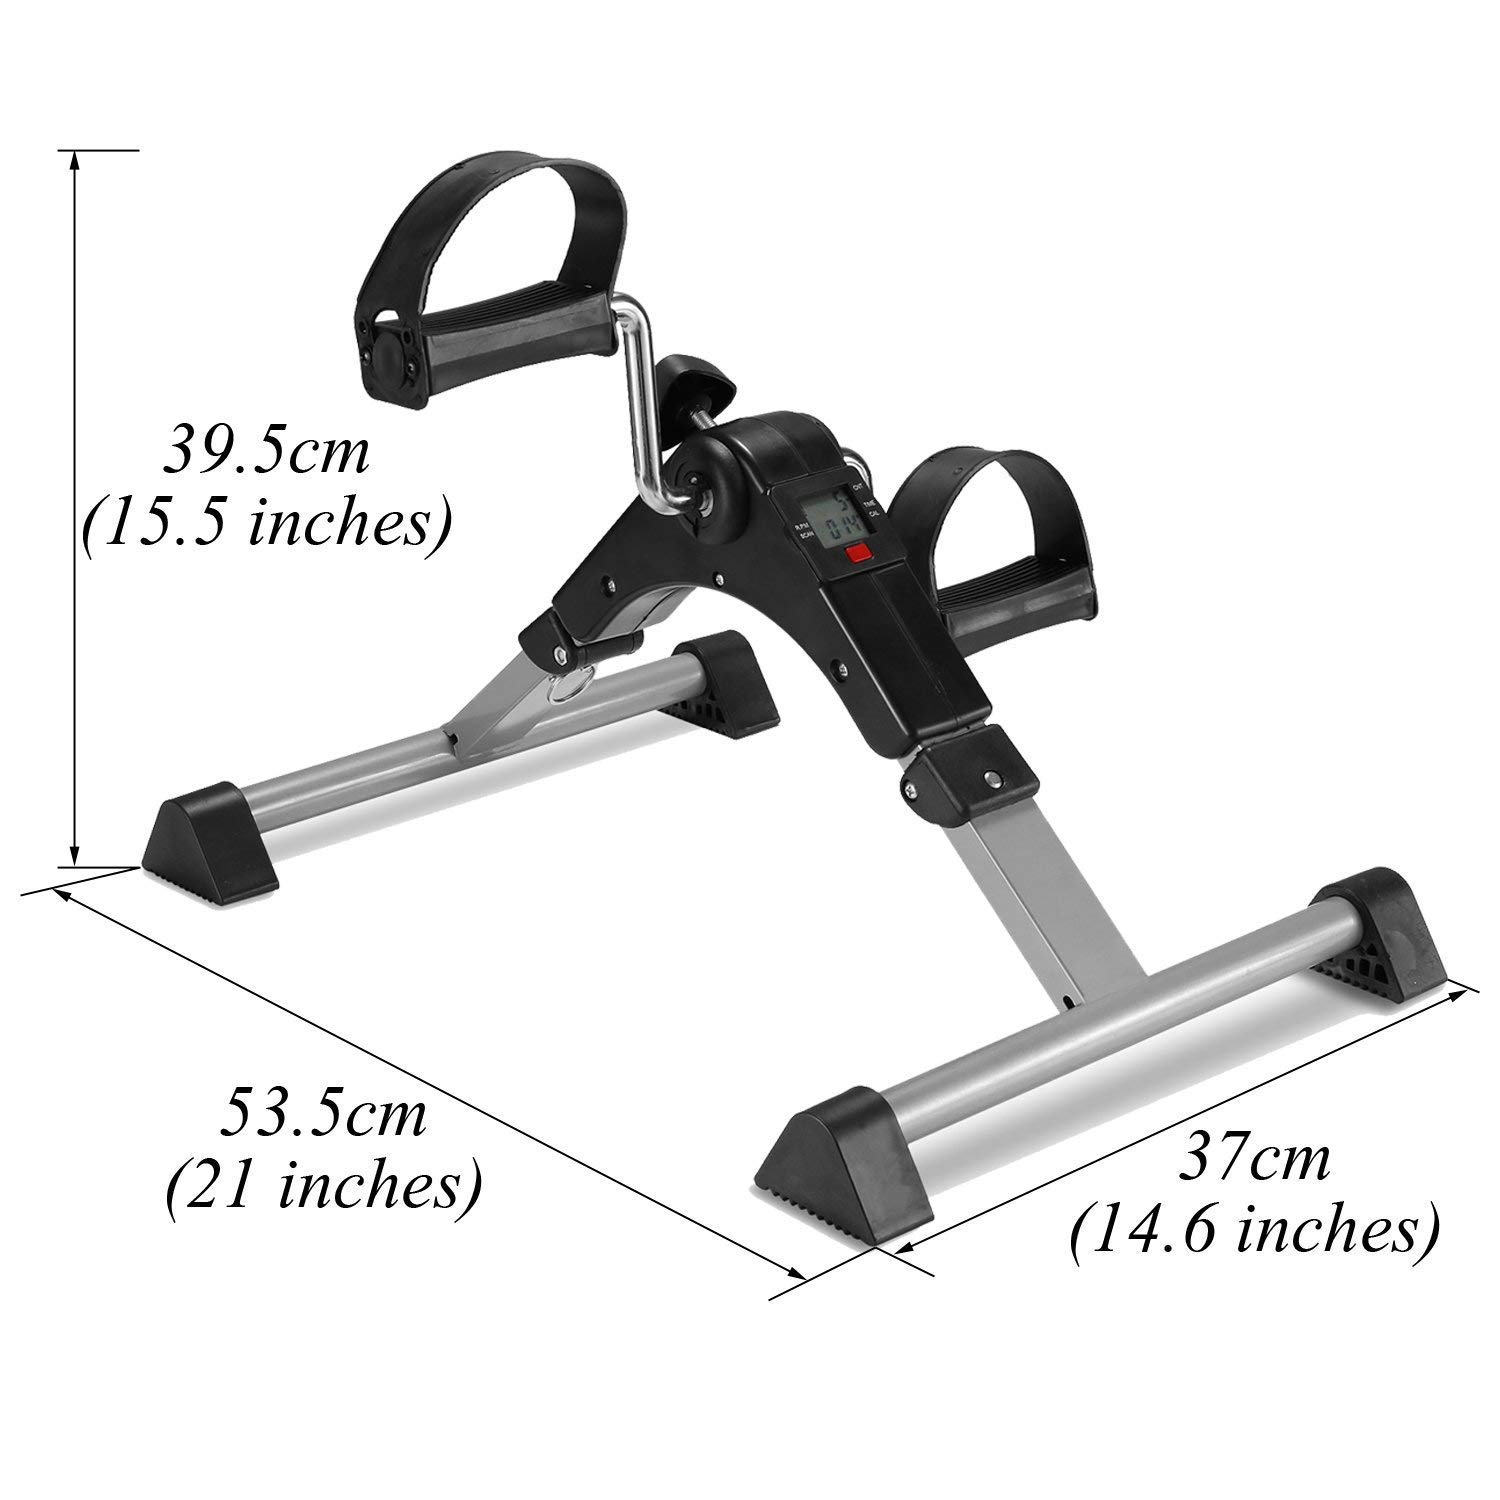 TODO Pedal Exerciser Foot Peddler Desk Bike Foldable with LCD Monitor by TODO (Image #3)